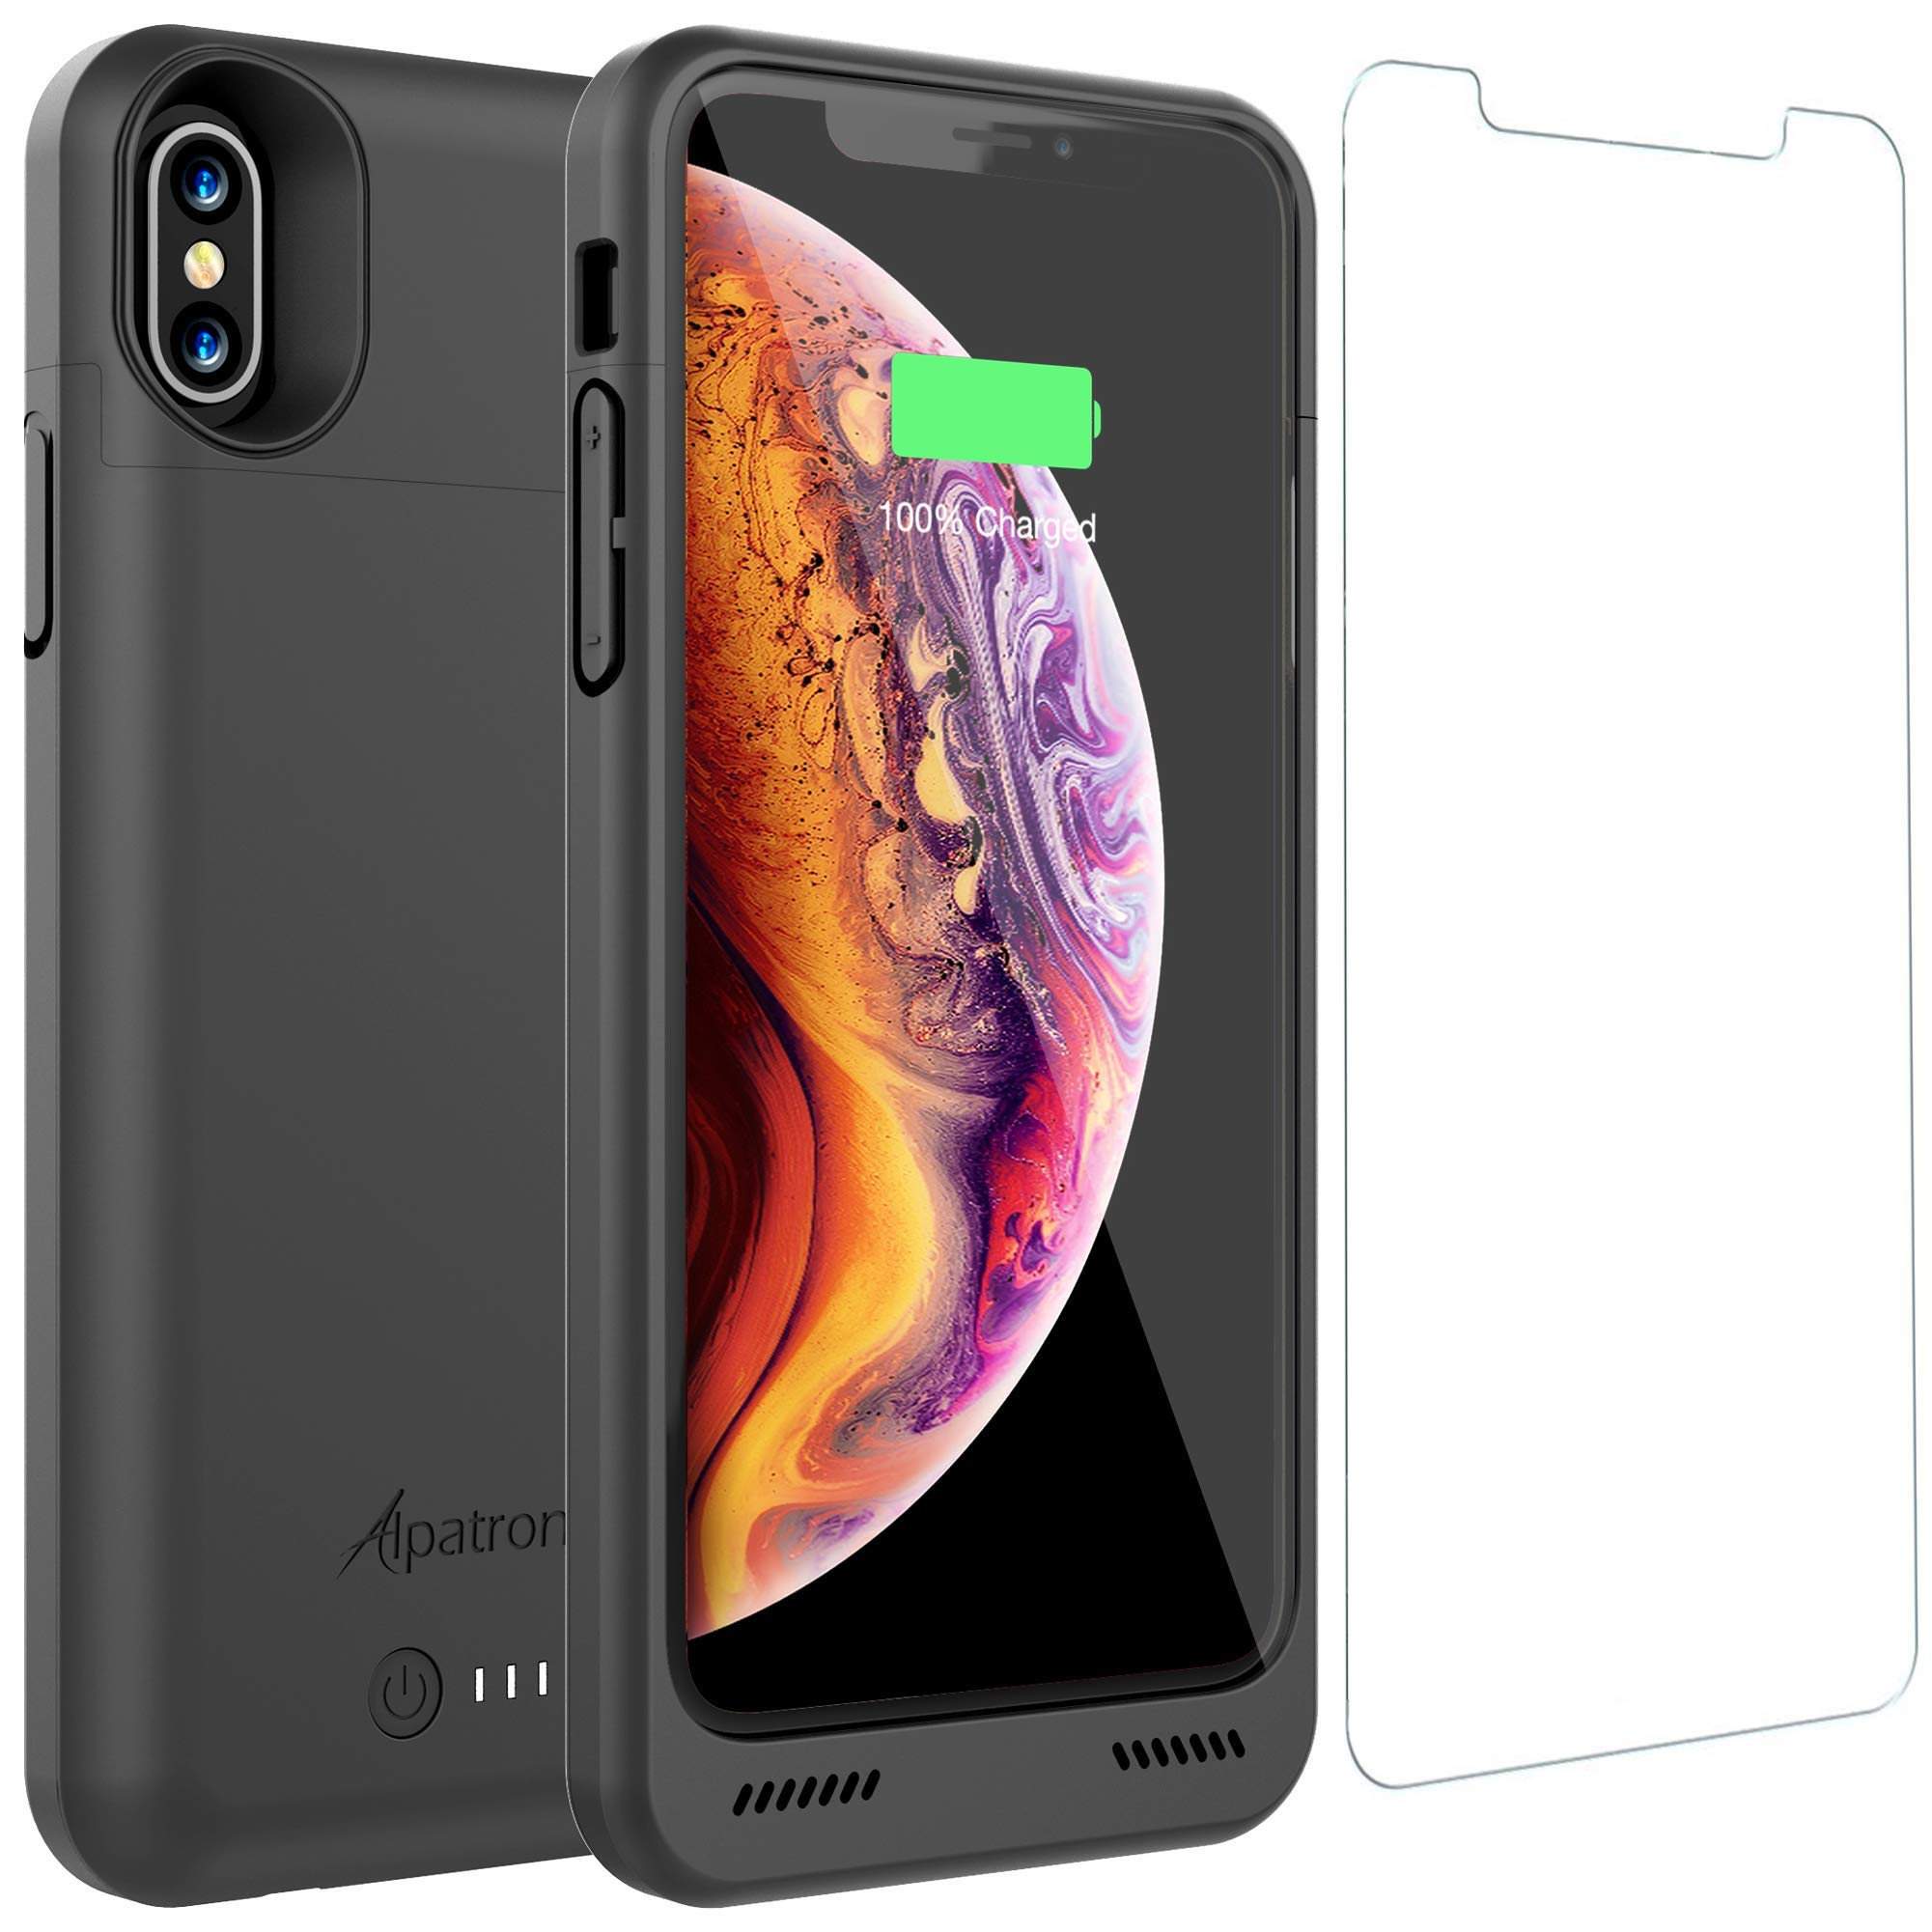 iPhone Xs/X Battery Case, Alpatronix BXXs 4200mAh Qi Compatible Wireless Portable Power Bank and iPhone Xs Slim Charger, 50% Faster Charging Battery Pack, Original iPhone Lightning Chip - Black